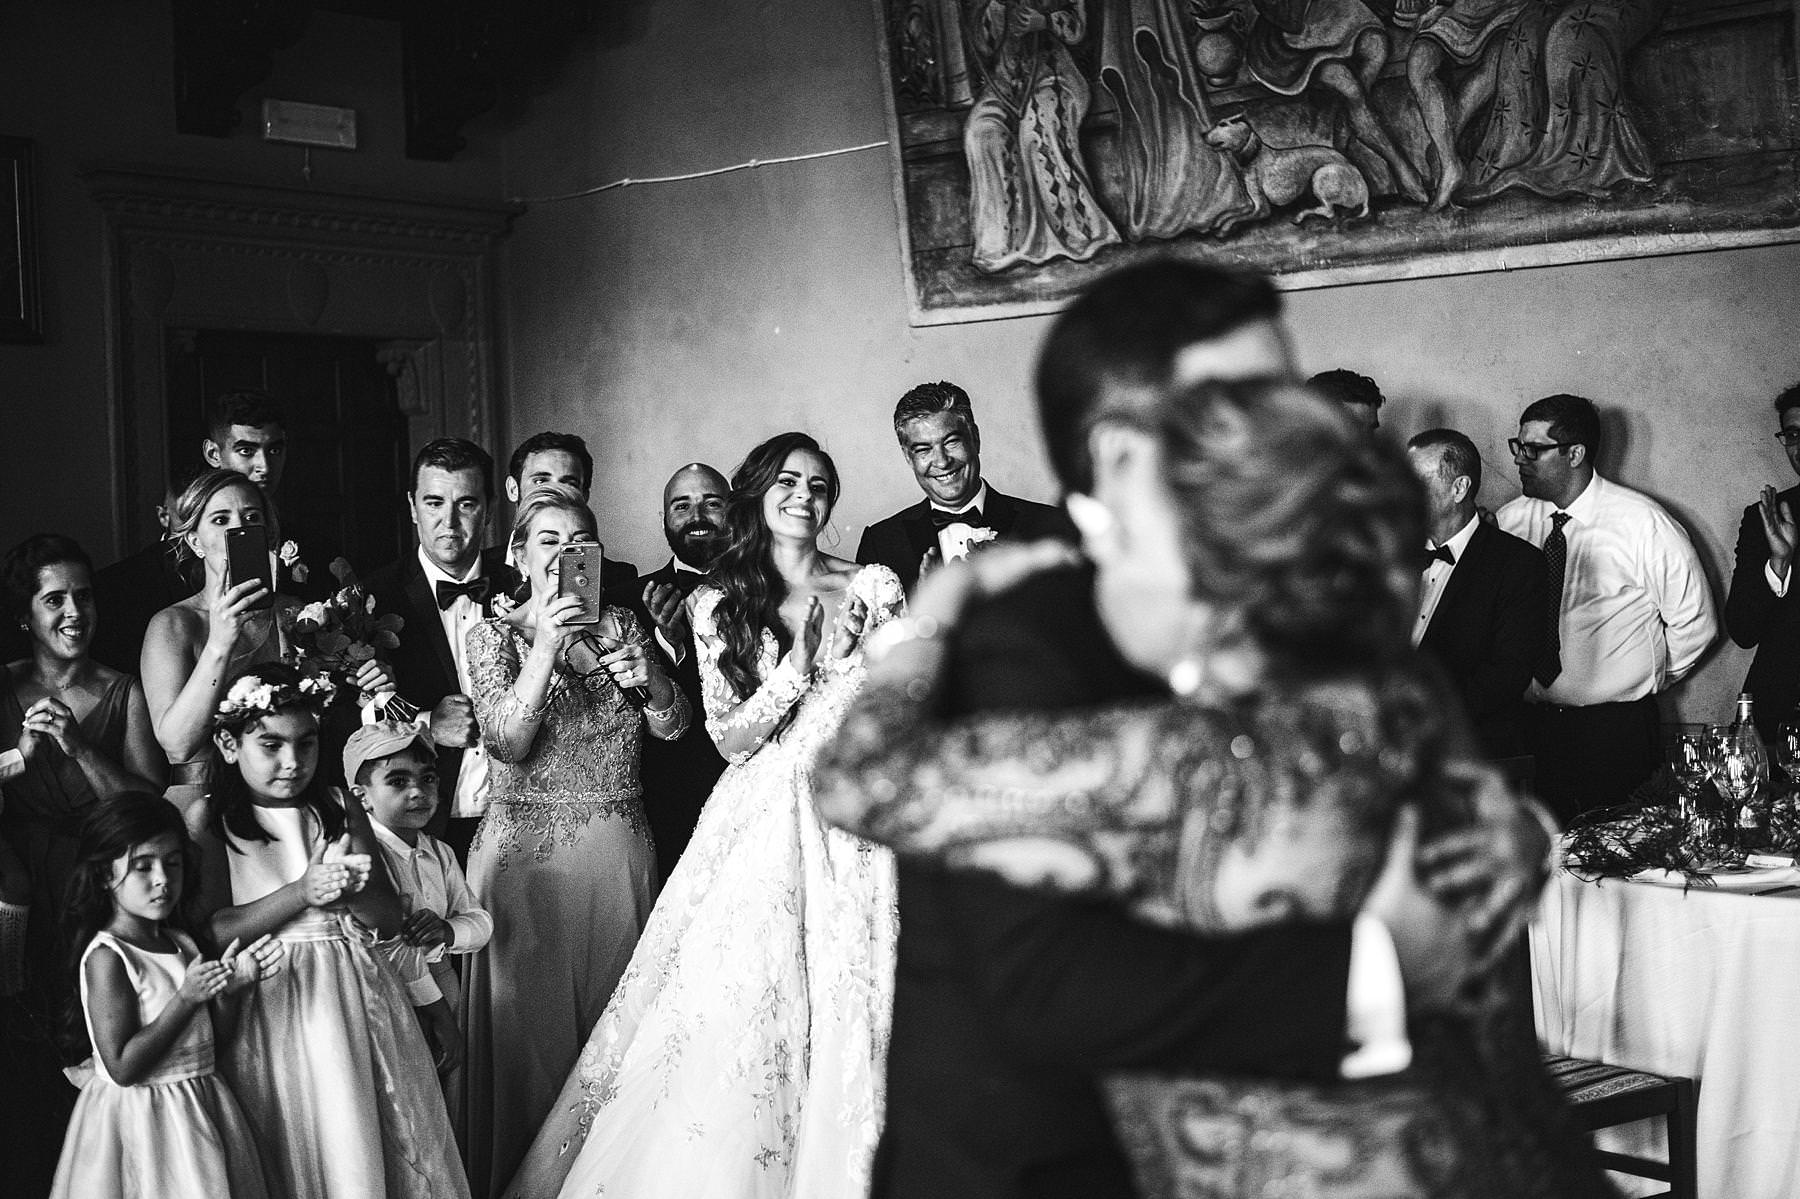 Reportage destination wedding photographer in Tuscany at Valenzano Castle. Groom and mother dance with bride reaction